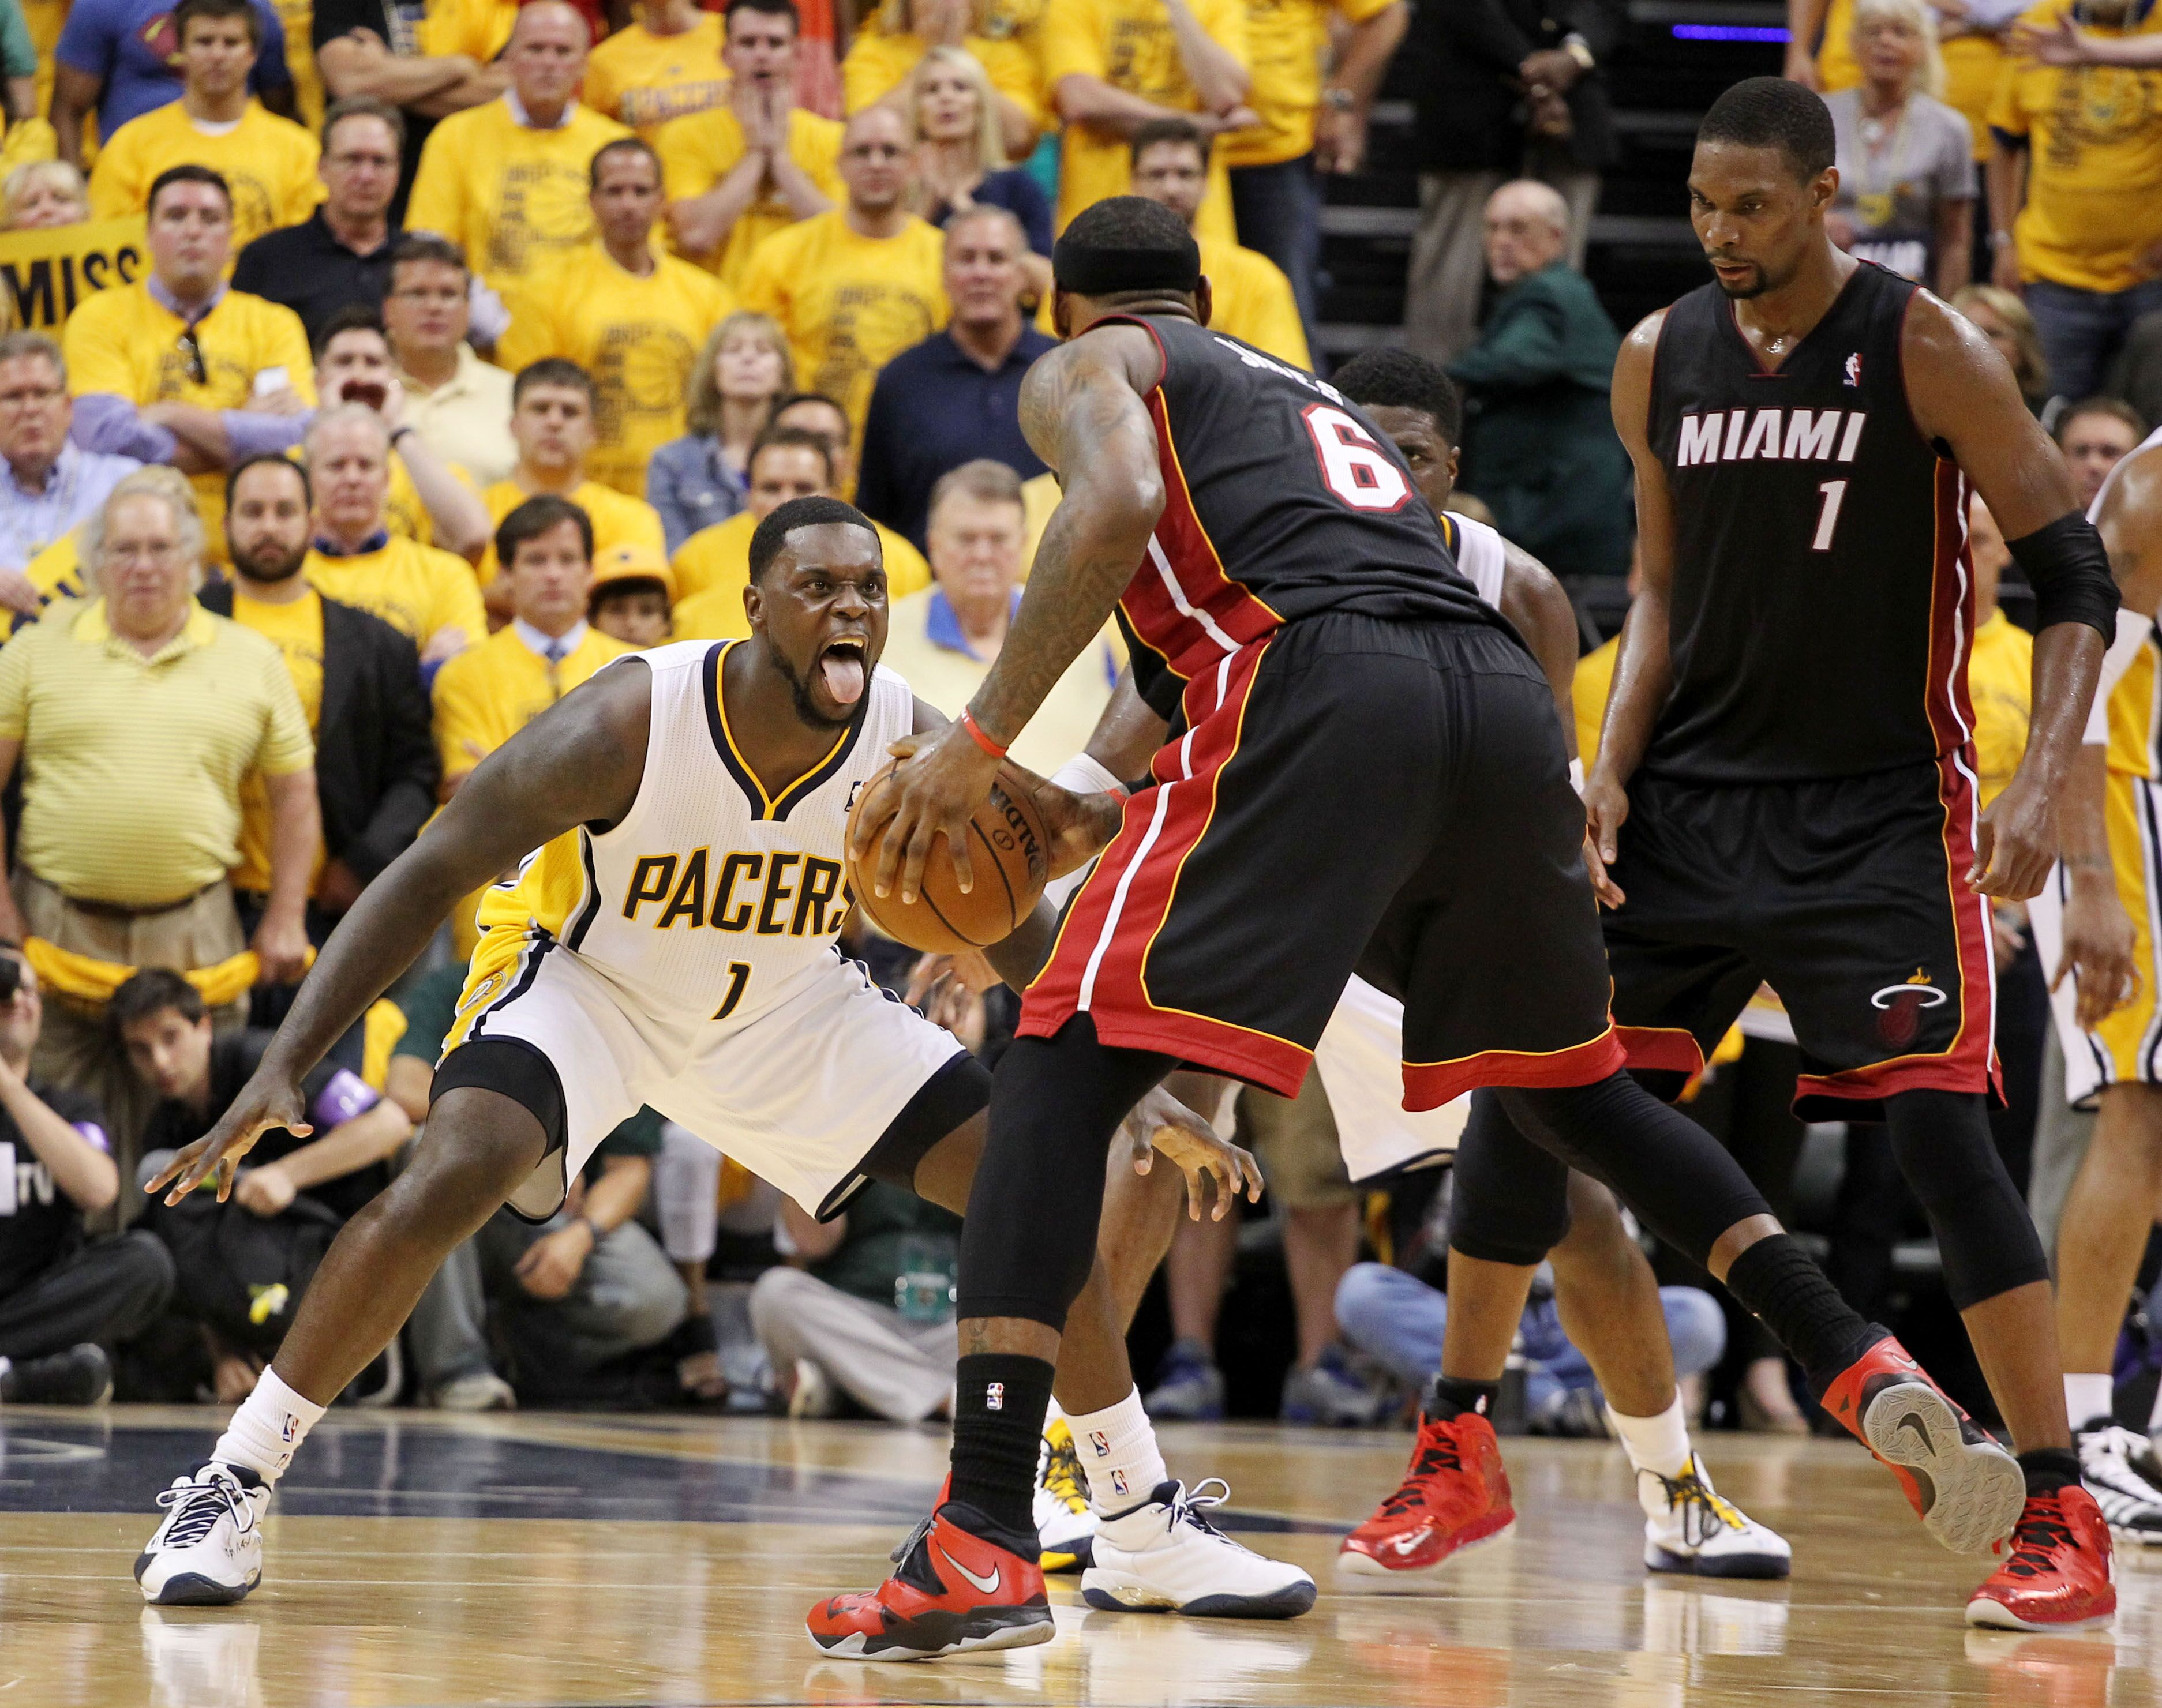 Nba Finals Game 2 Podcast | All Basketball Scores Info